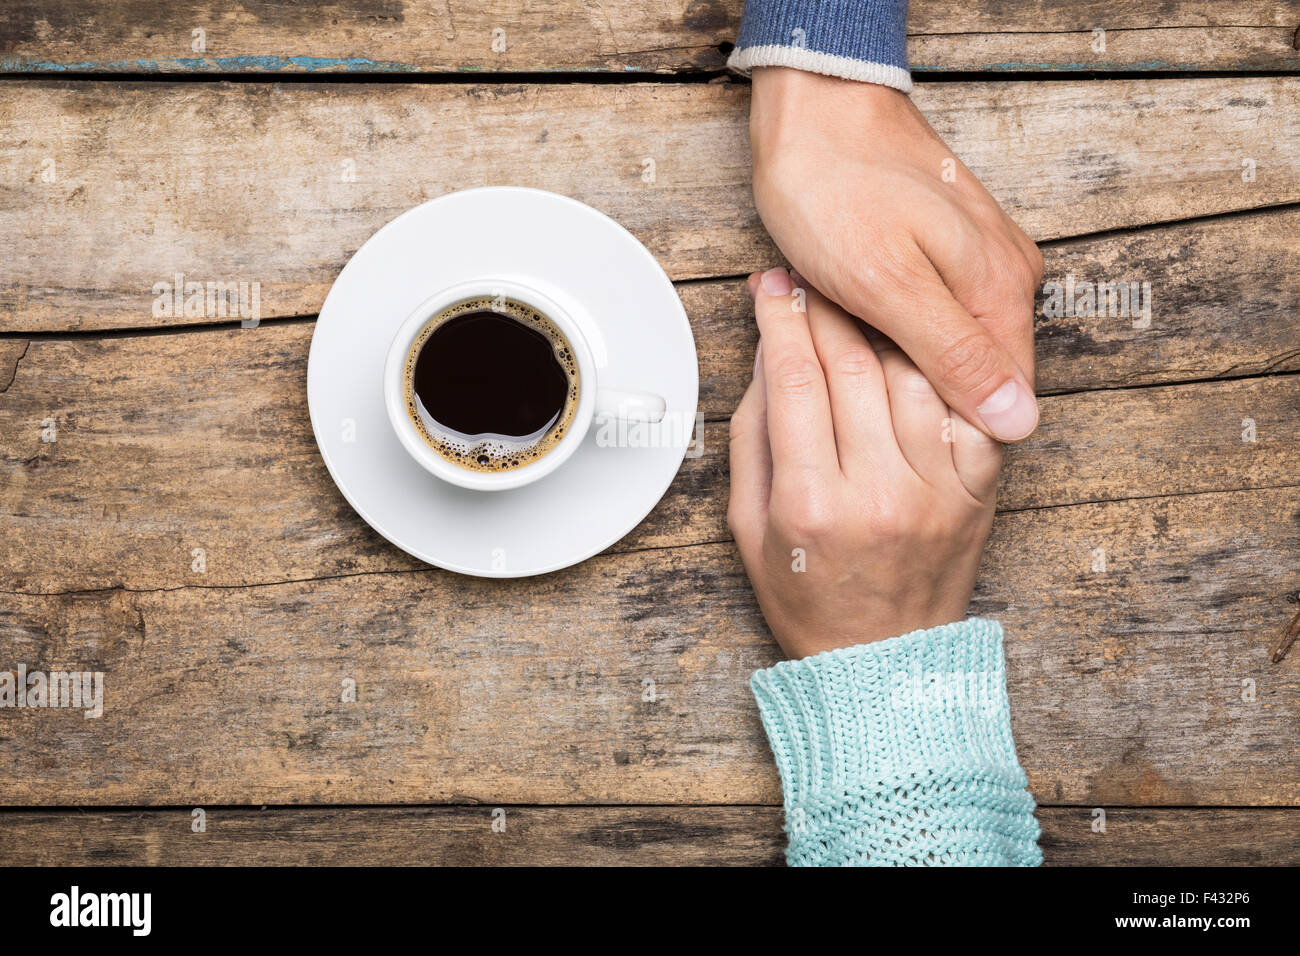 Man holds woman's hand with cup of coffee top view image on wooden backdrop. Friendship coffee background - Stock Image